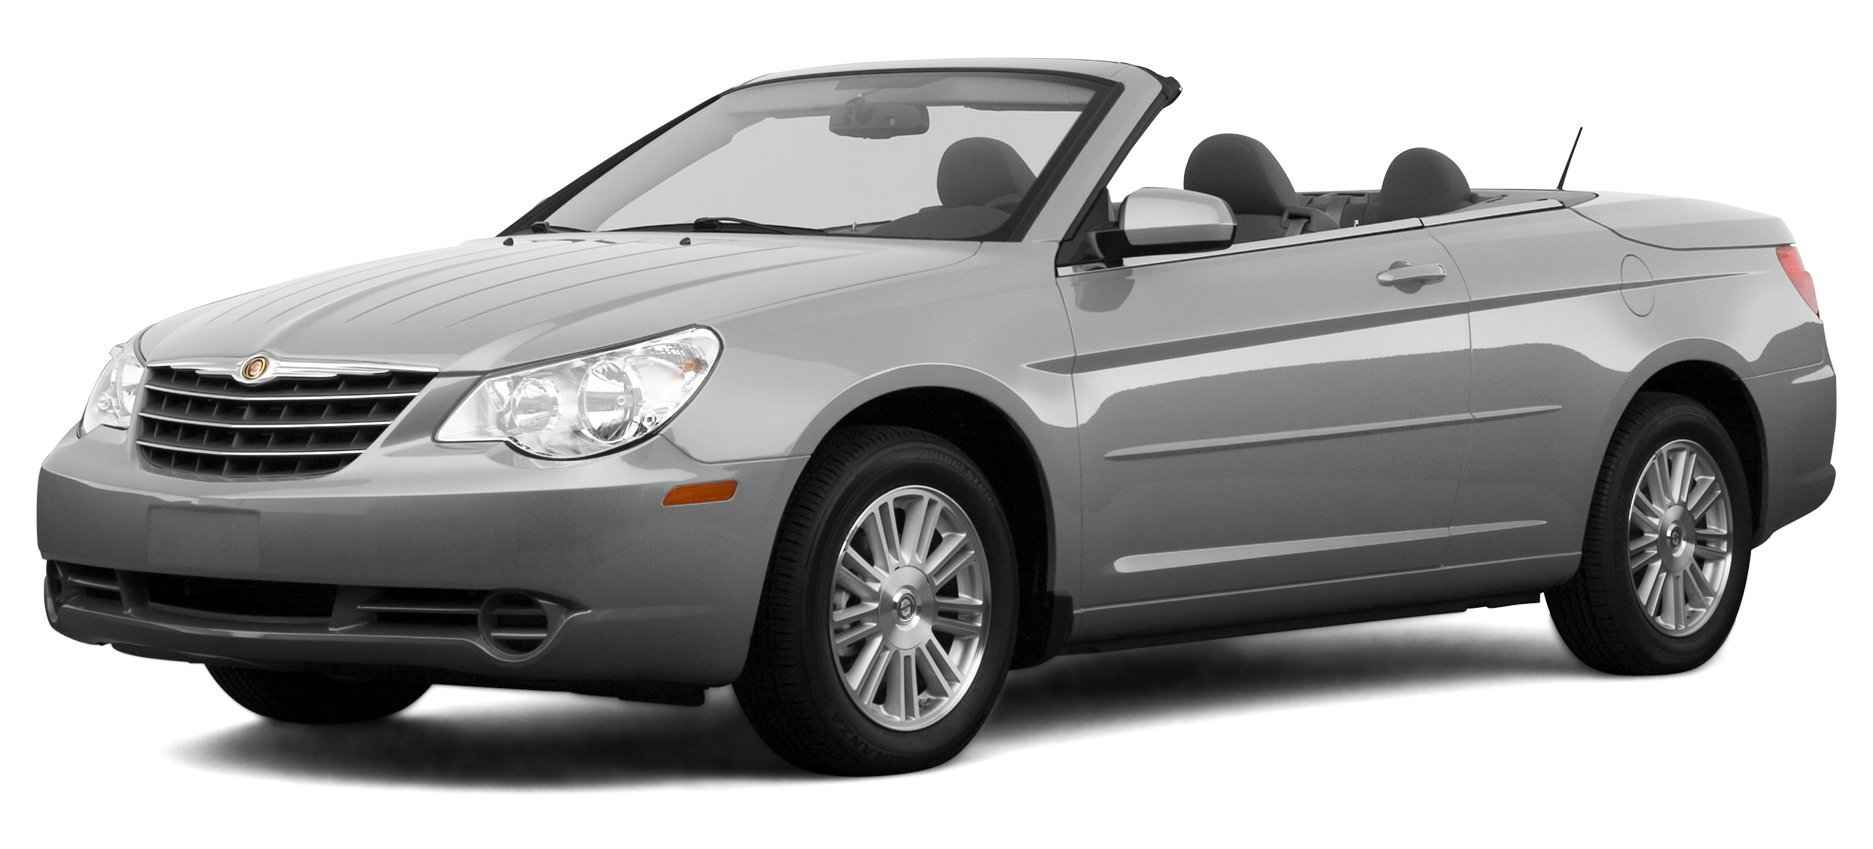 2008 chrysler sebring reviews images and specs vehicles. Black Bedroom Furniture Sets. Home Design Ideas